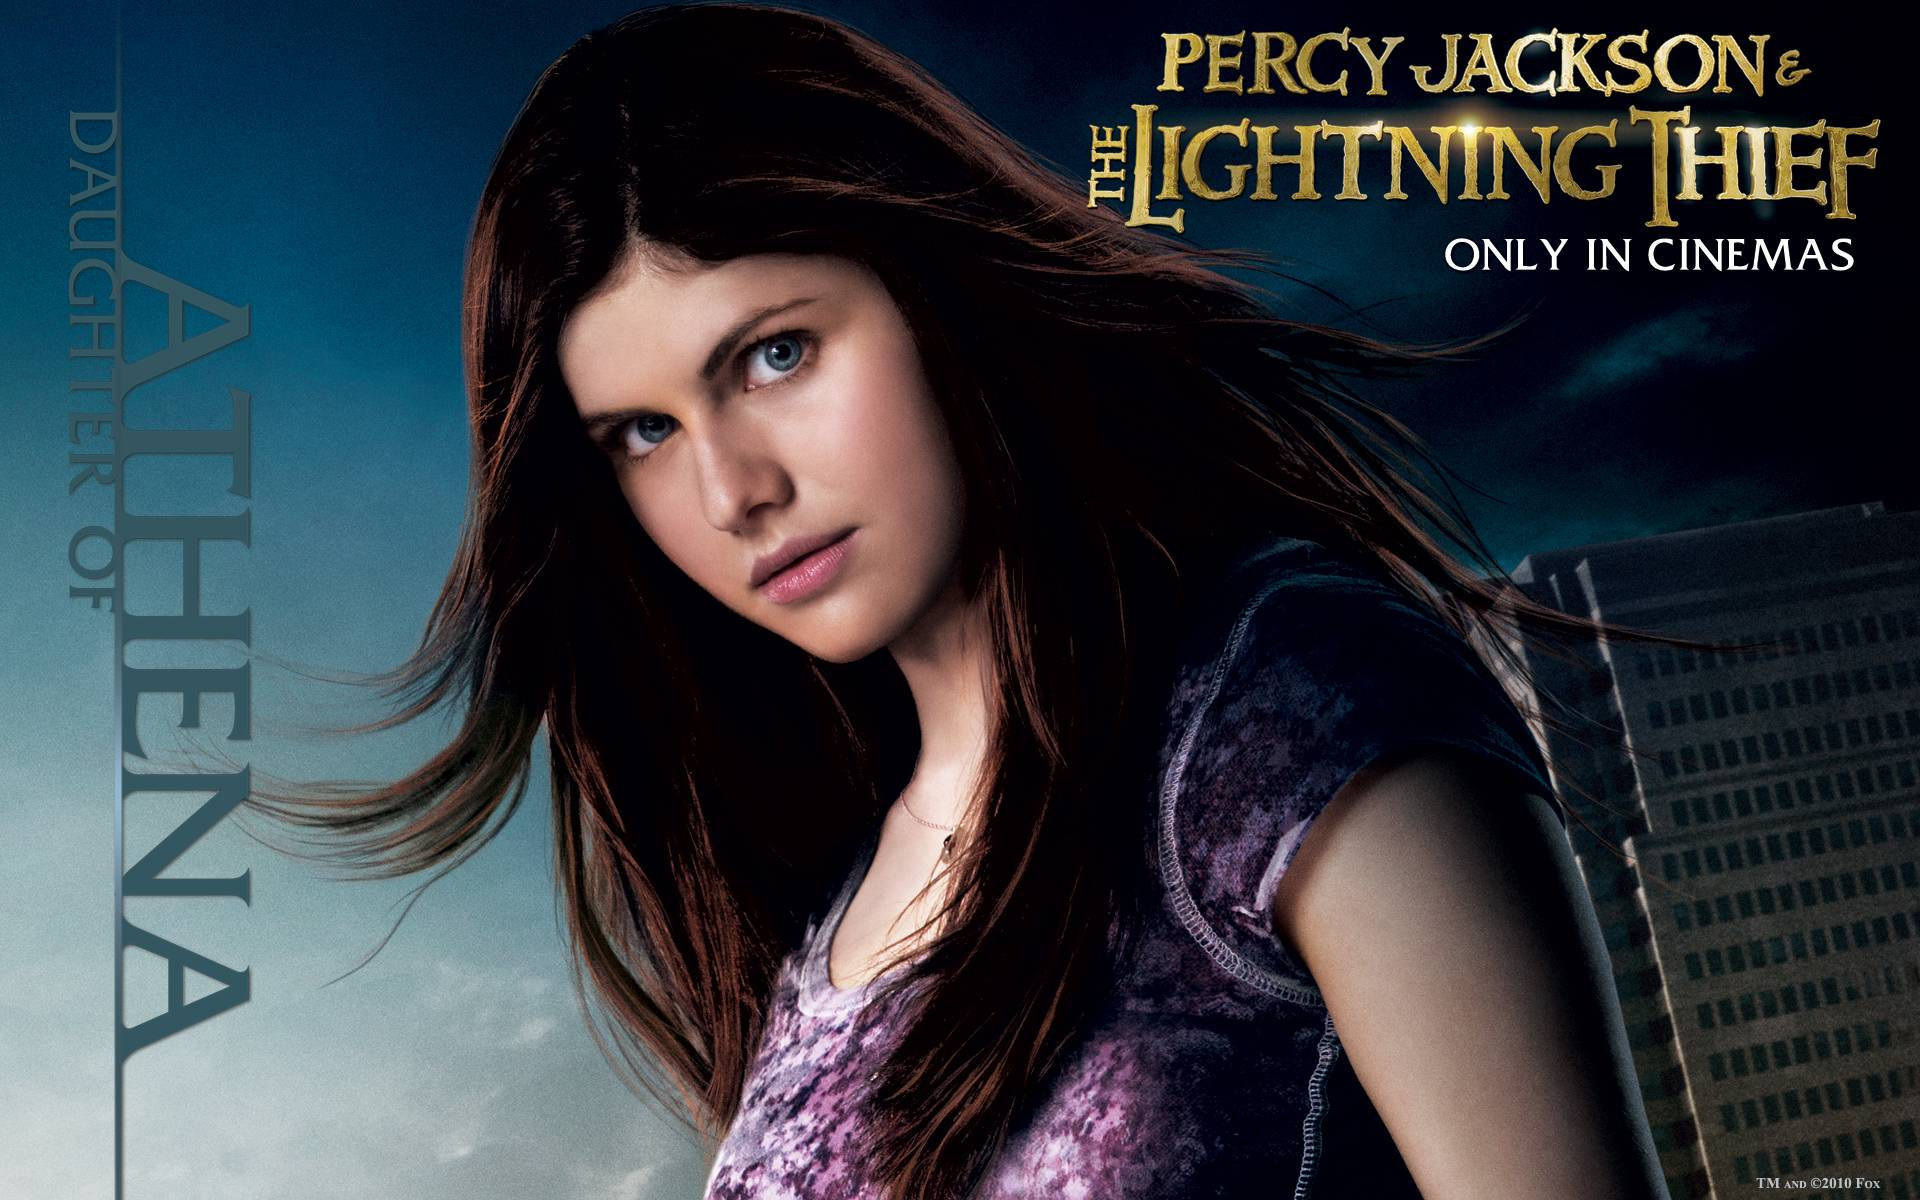 Percy Jackson Wallpapers - Wallpaper Cave